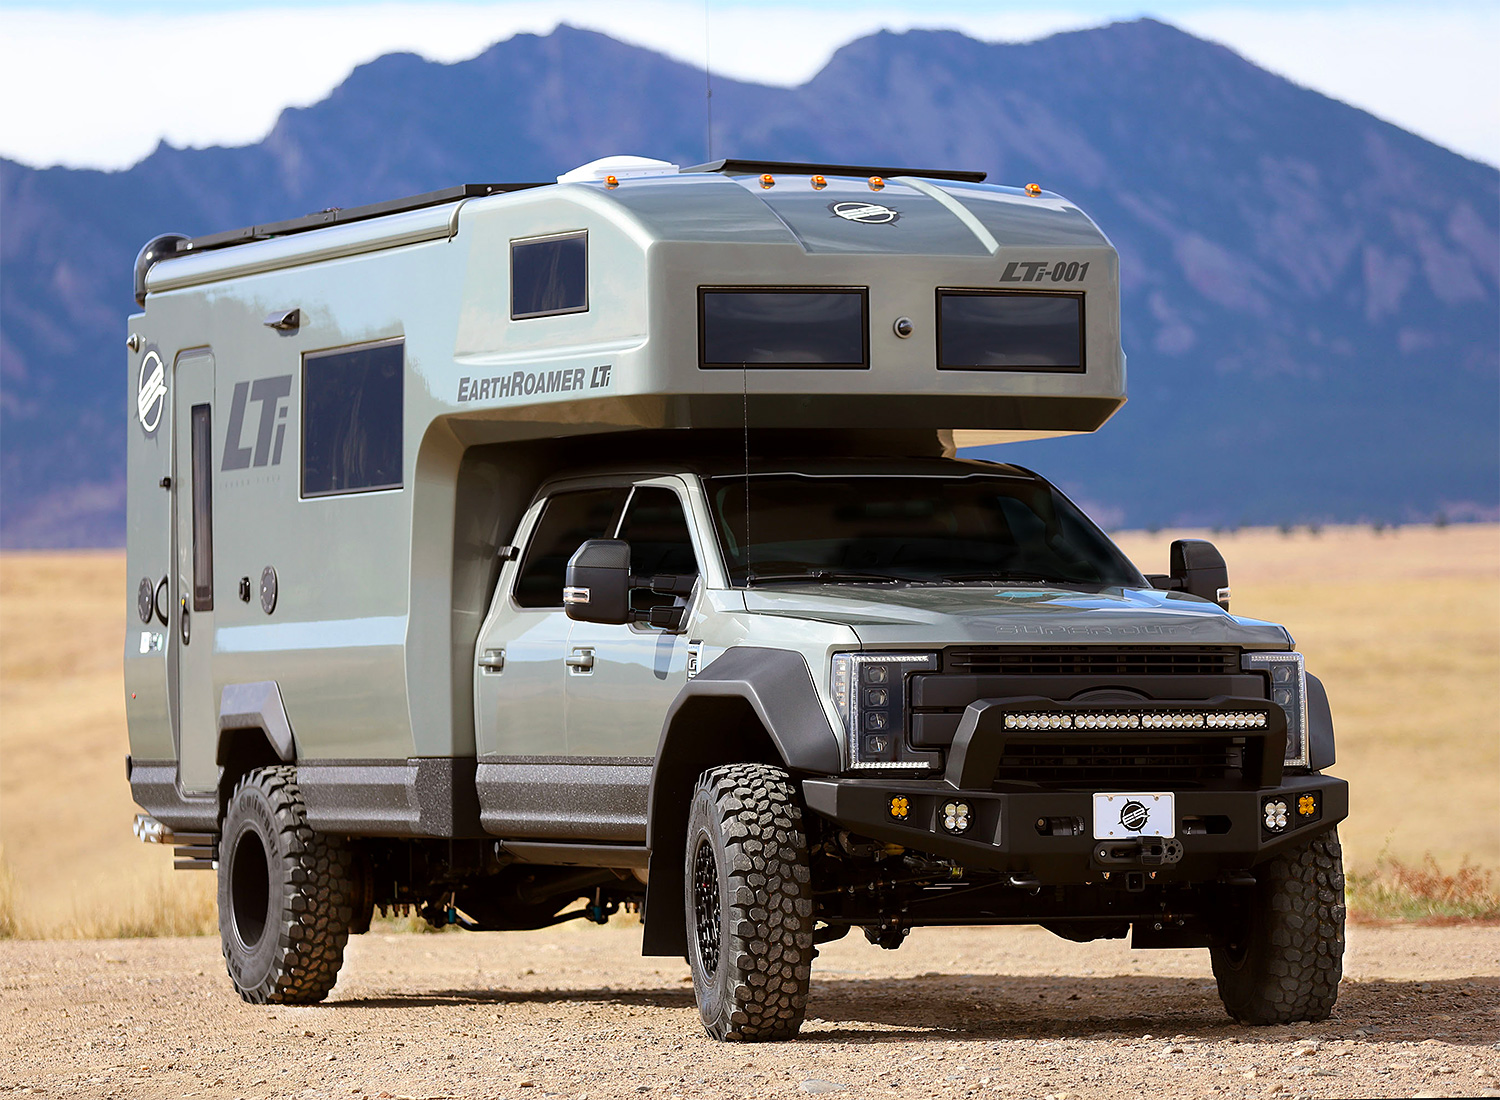 The EarthRoamer LTi is the Ultimate Overland RV at werd.com